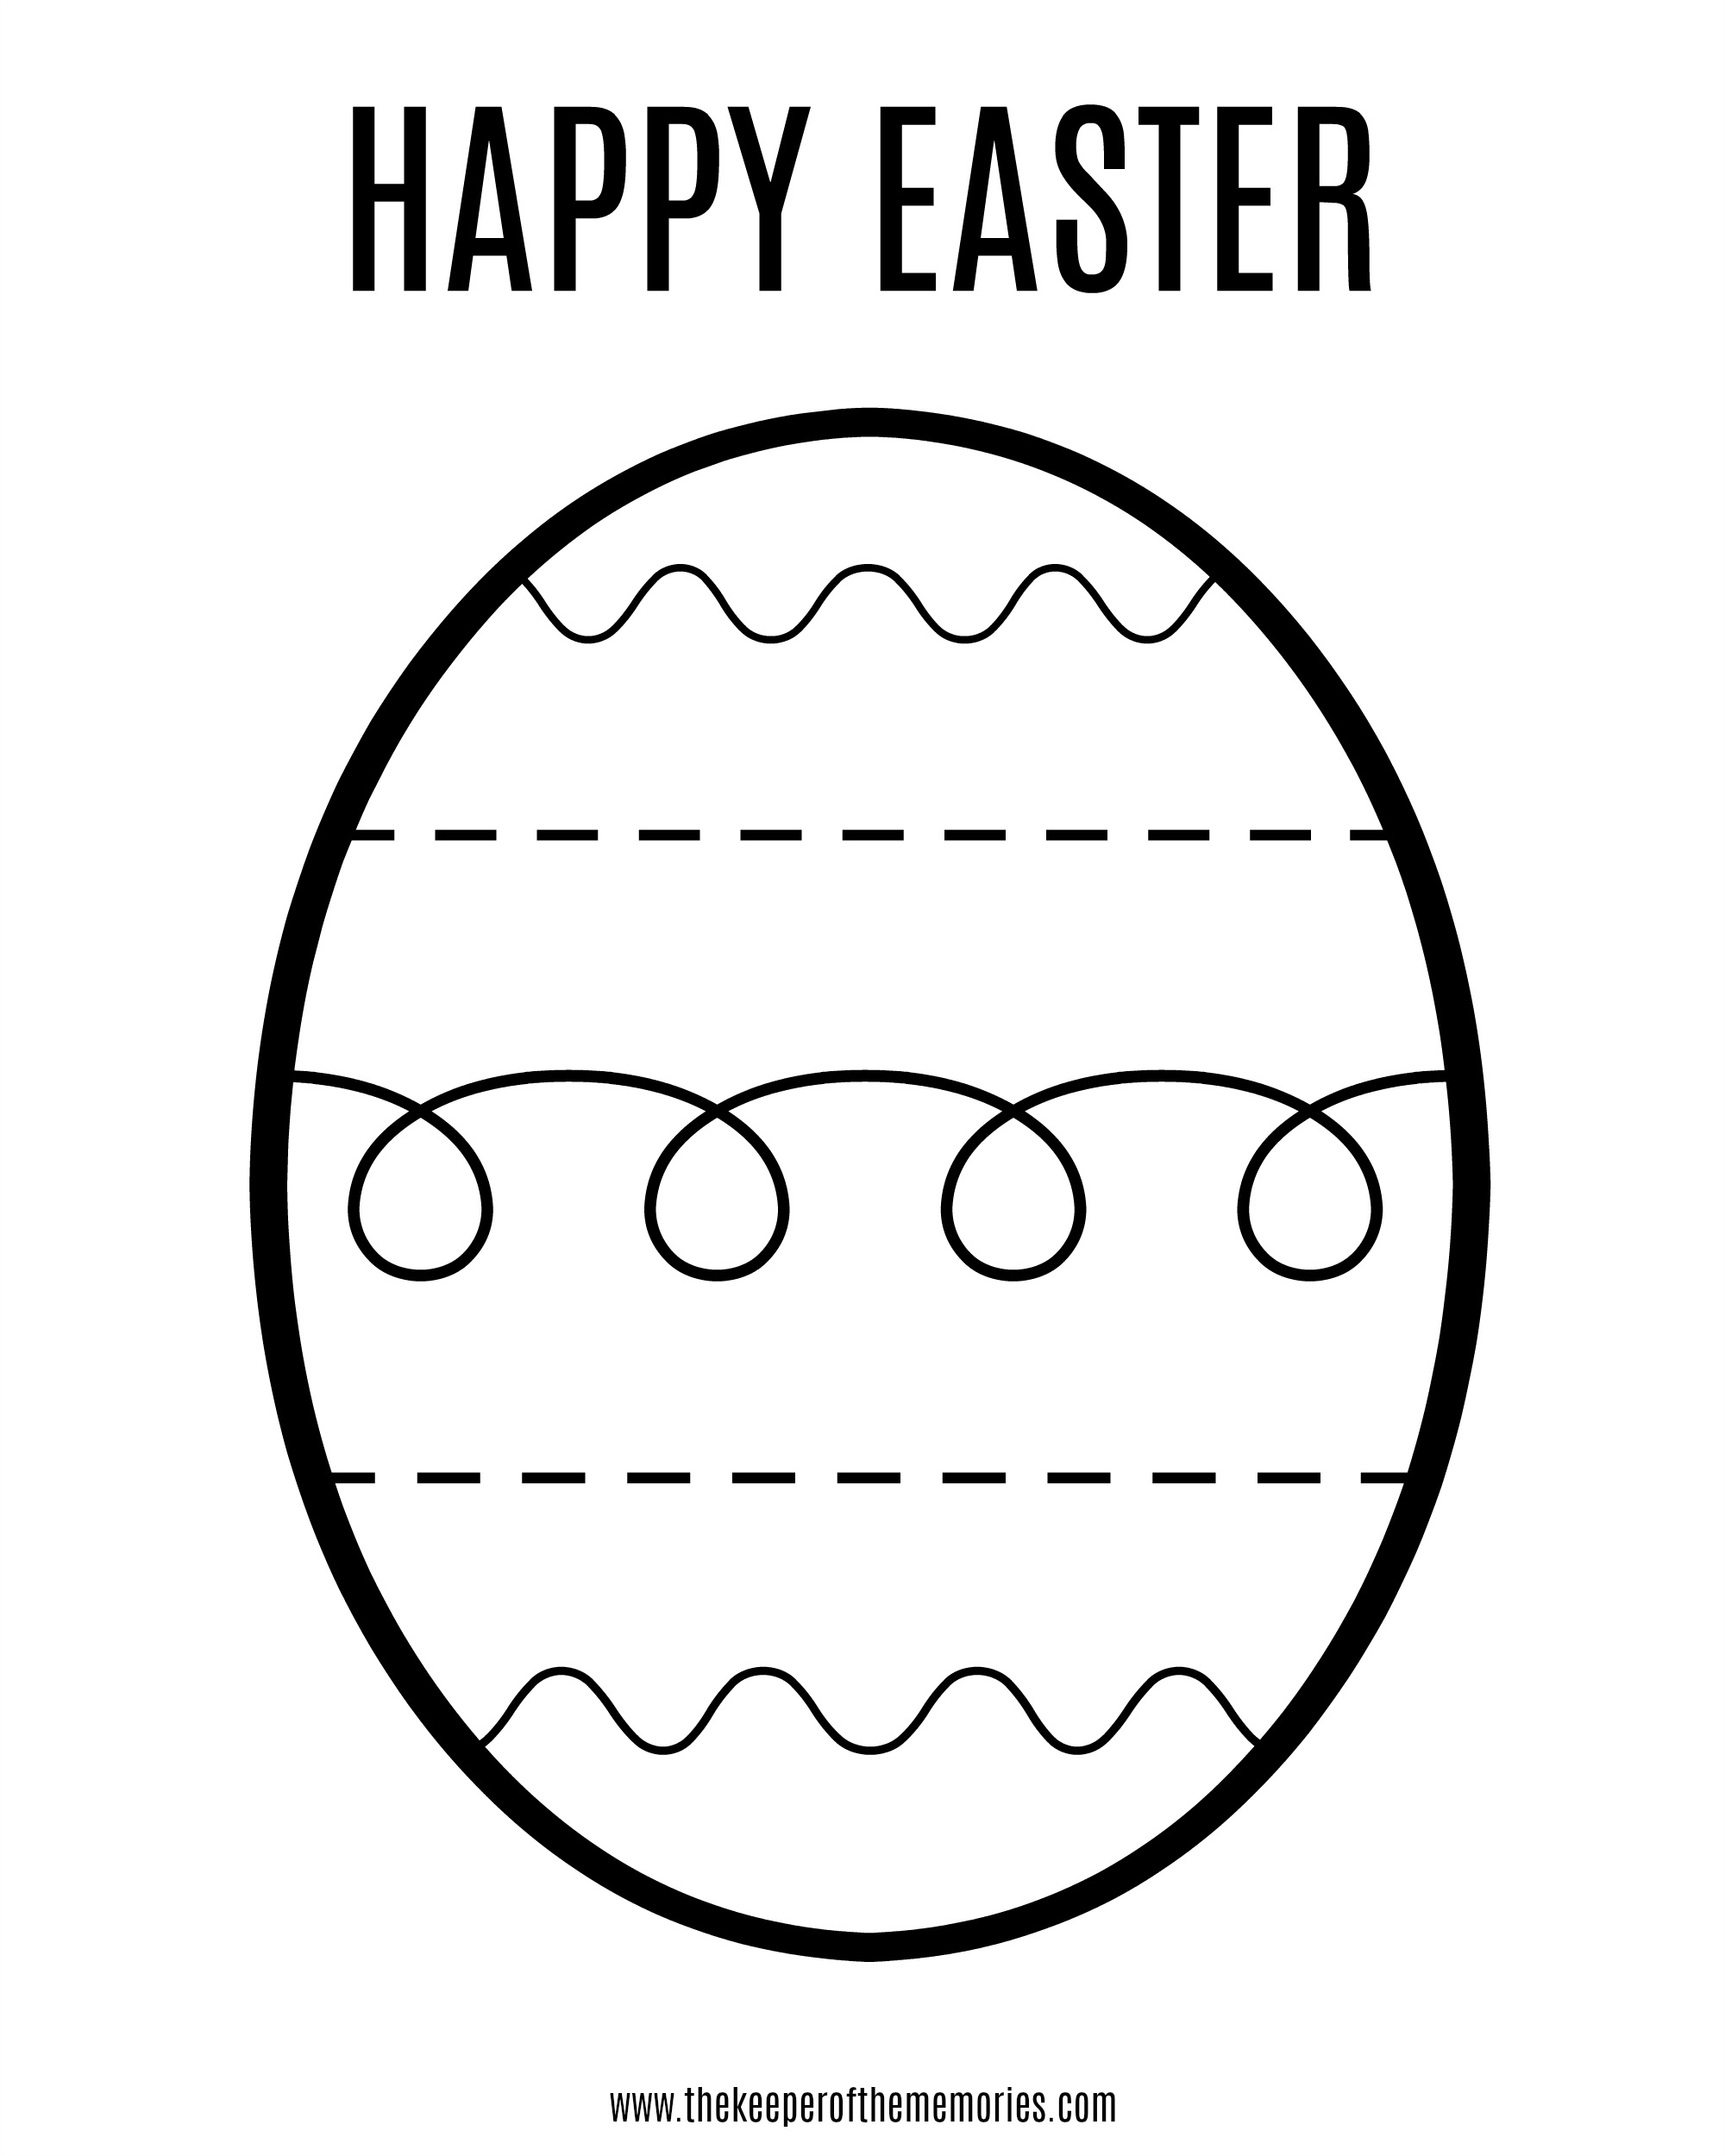 Free Printable Easter Coloring Sheet For Little Kids - The Keeper Of - Free Printable Easter Coloring Pages For Toddlers